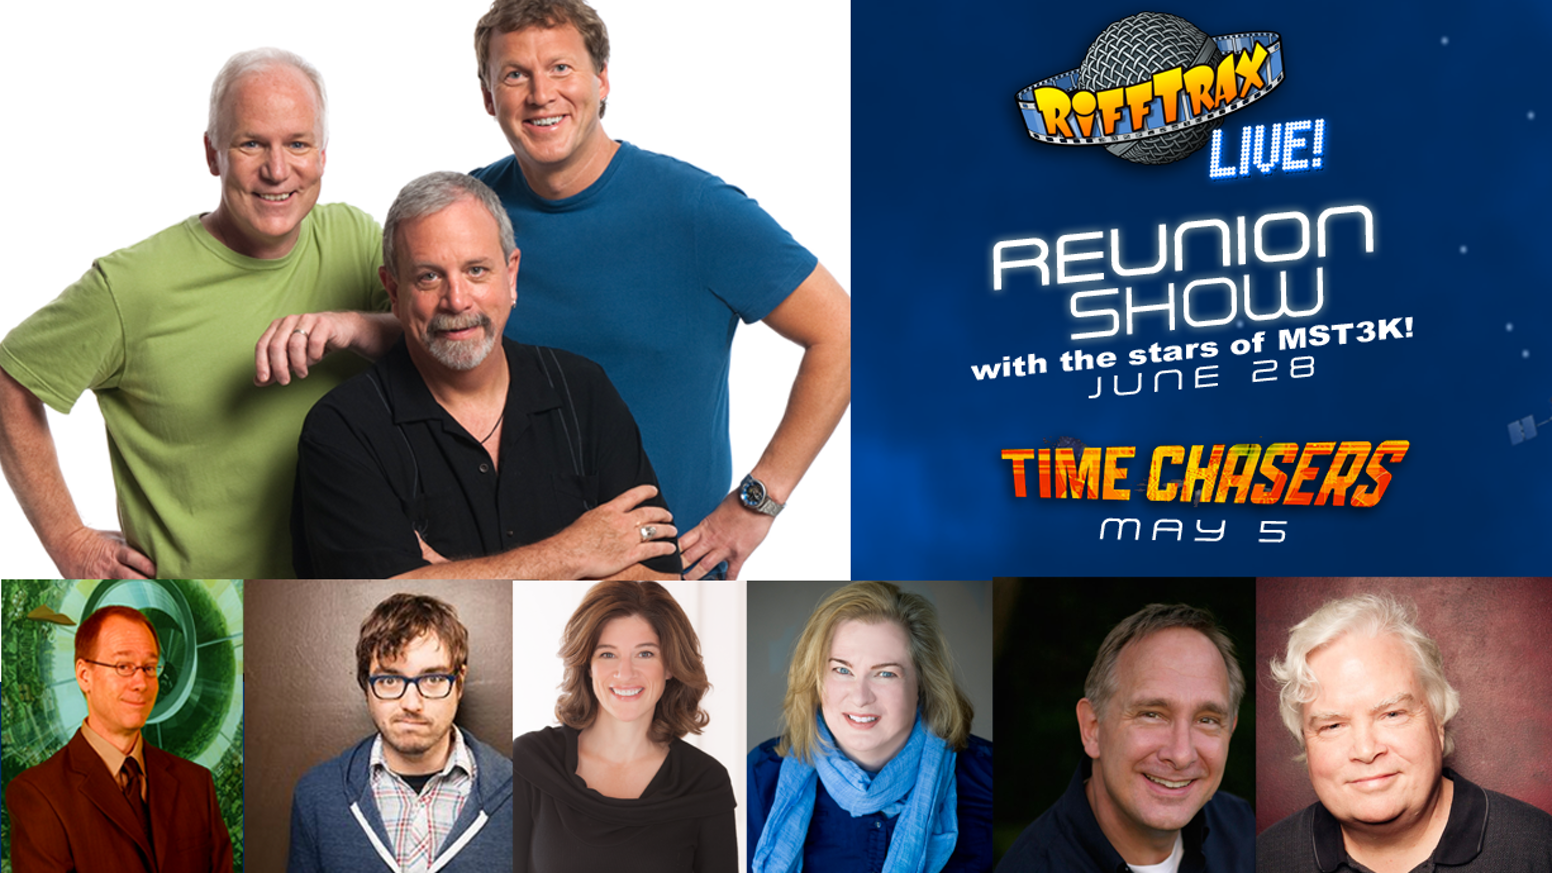 An MST3K reunion with the cast members from the original show simulcast LIVE to theaters nationwide! Plus a Live riff of Time Chasers, Mothra and Carnival of Souls!